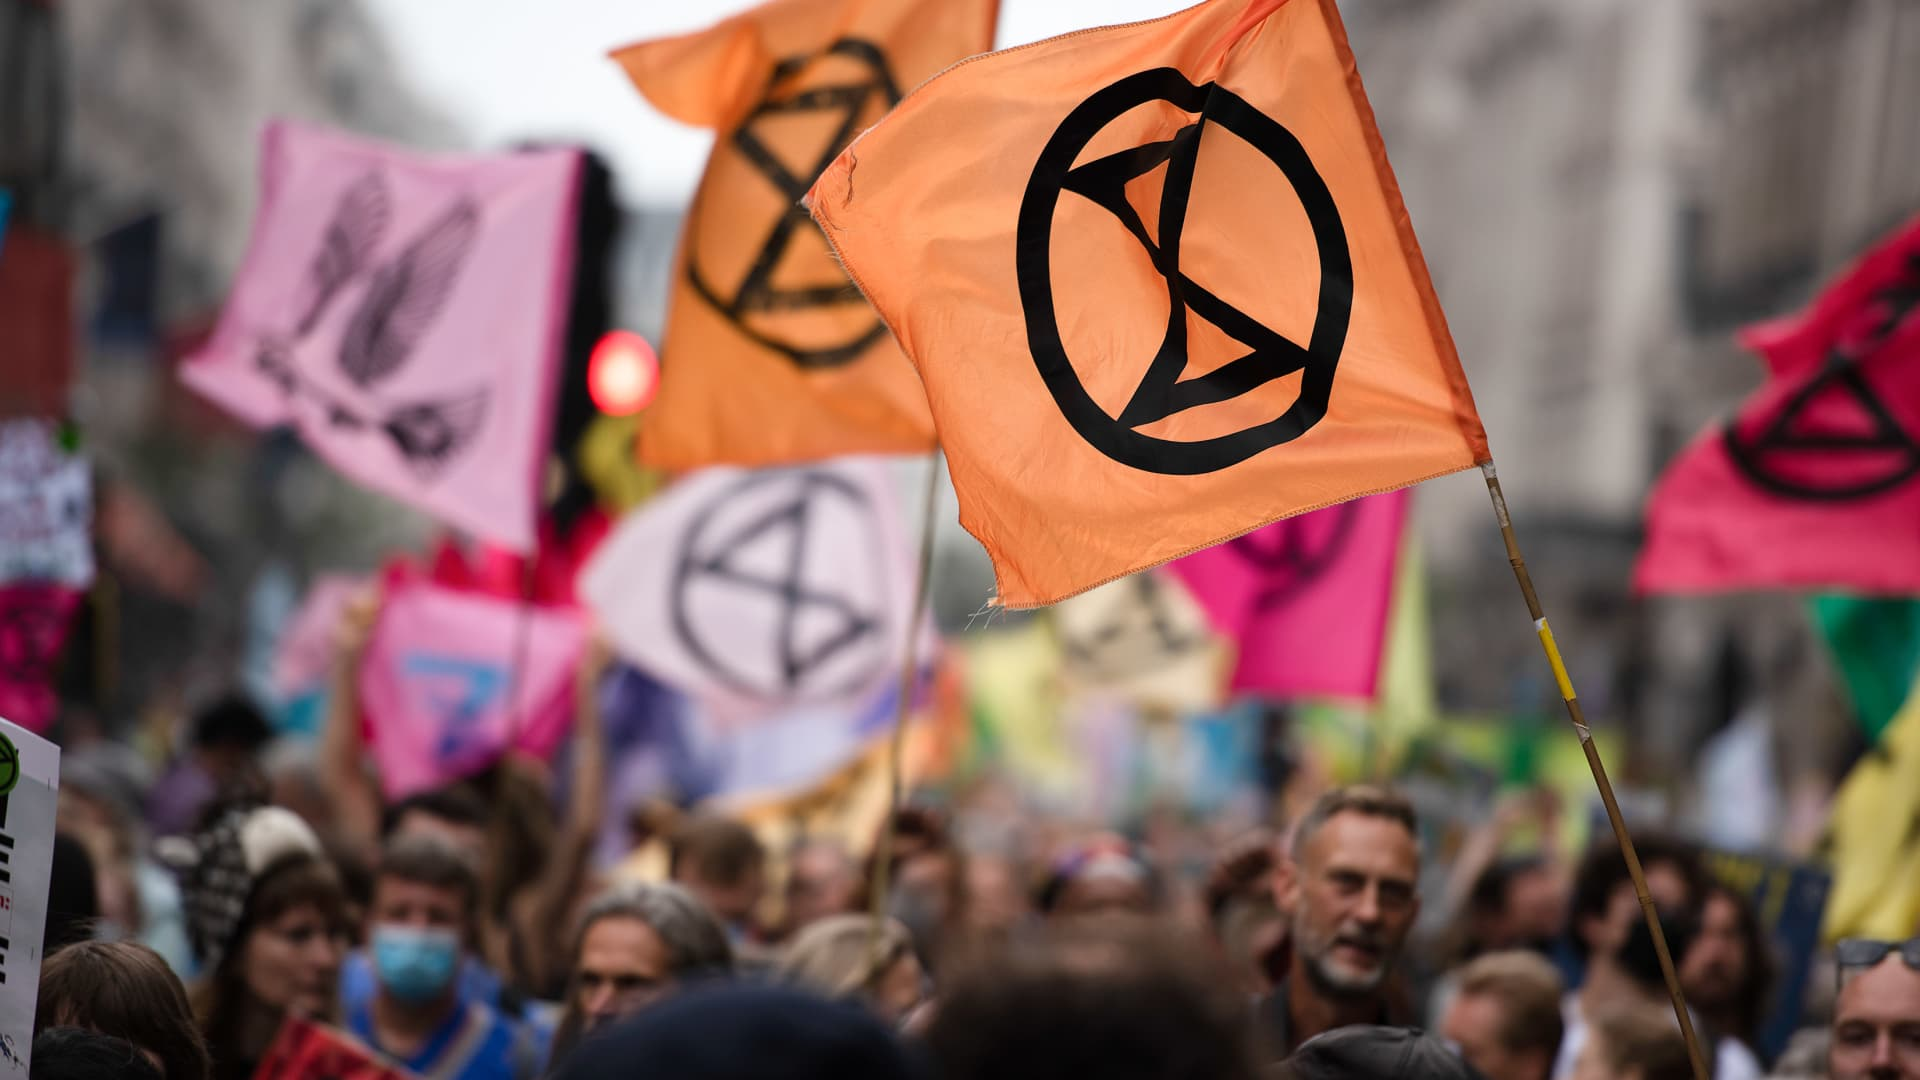 Activists march with flags and placards, during the march at Extinction Rebellion's Nature Protest held in Central London about how nature is in crisis.